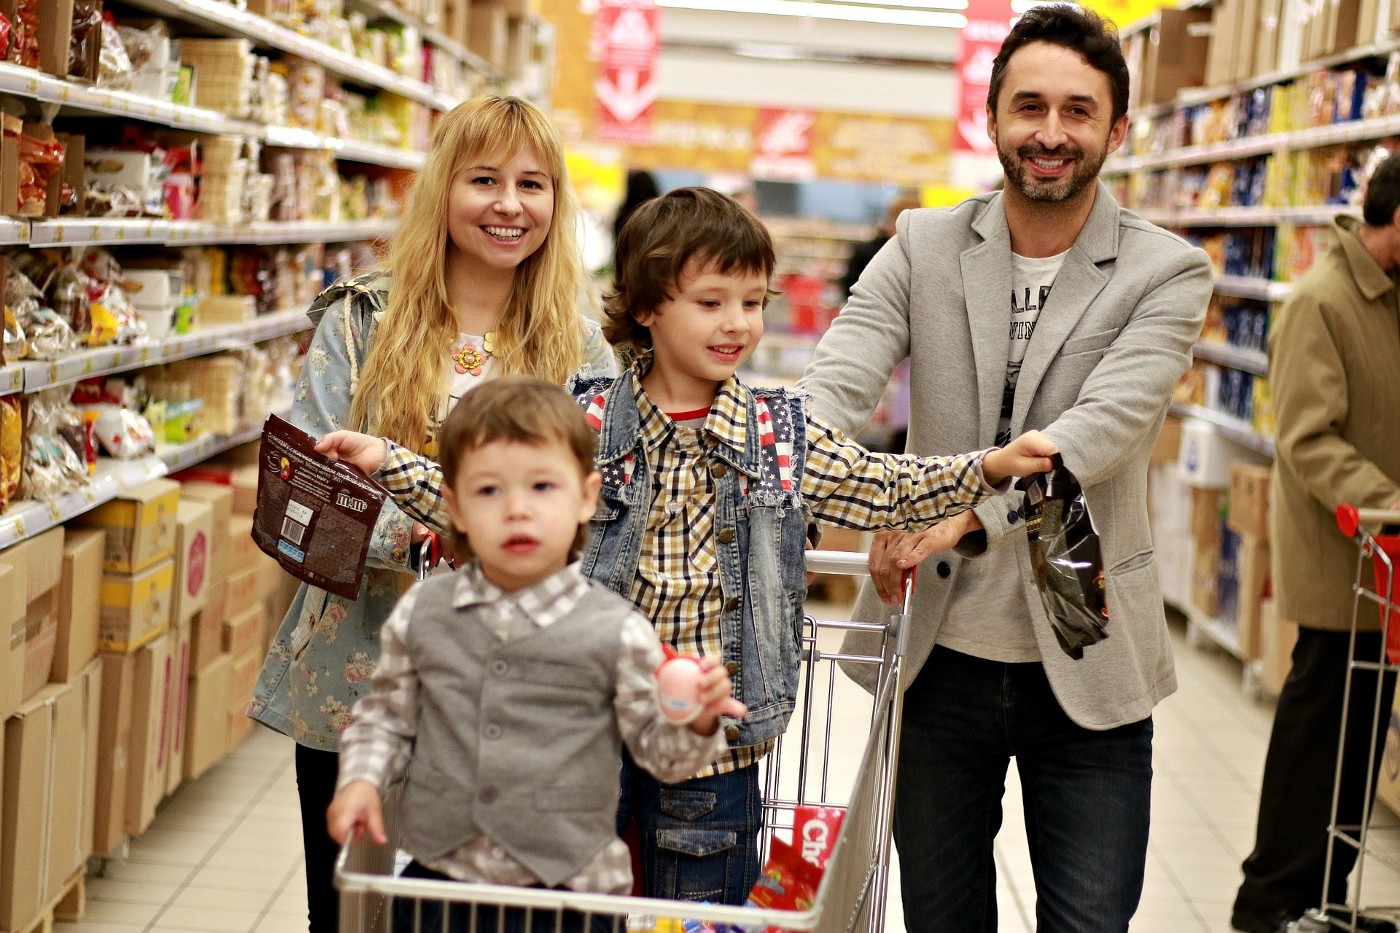 A family grocery shopping